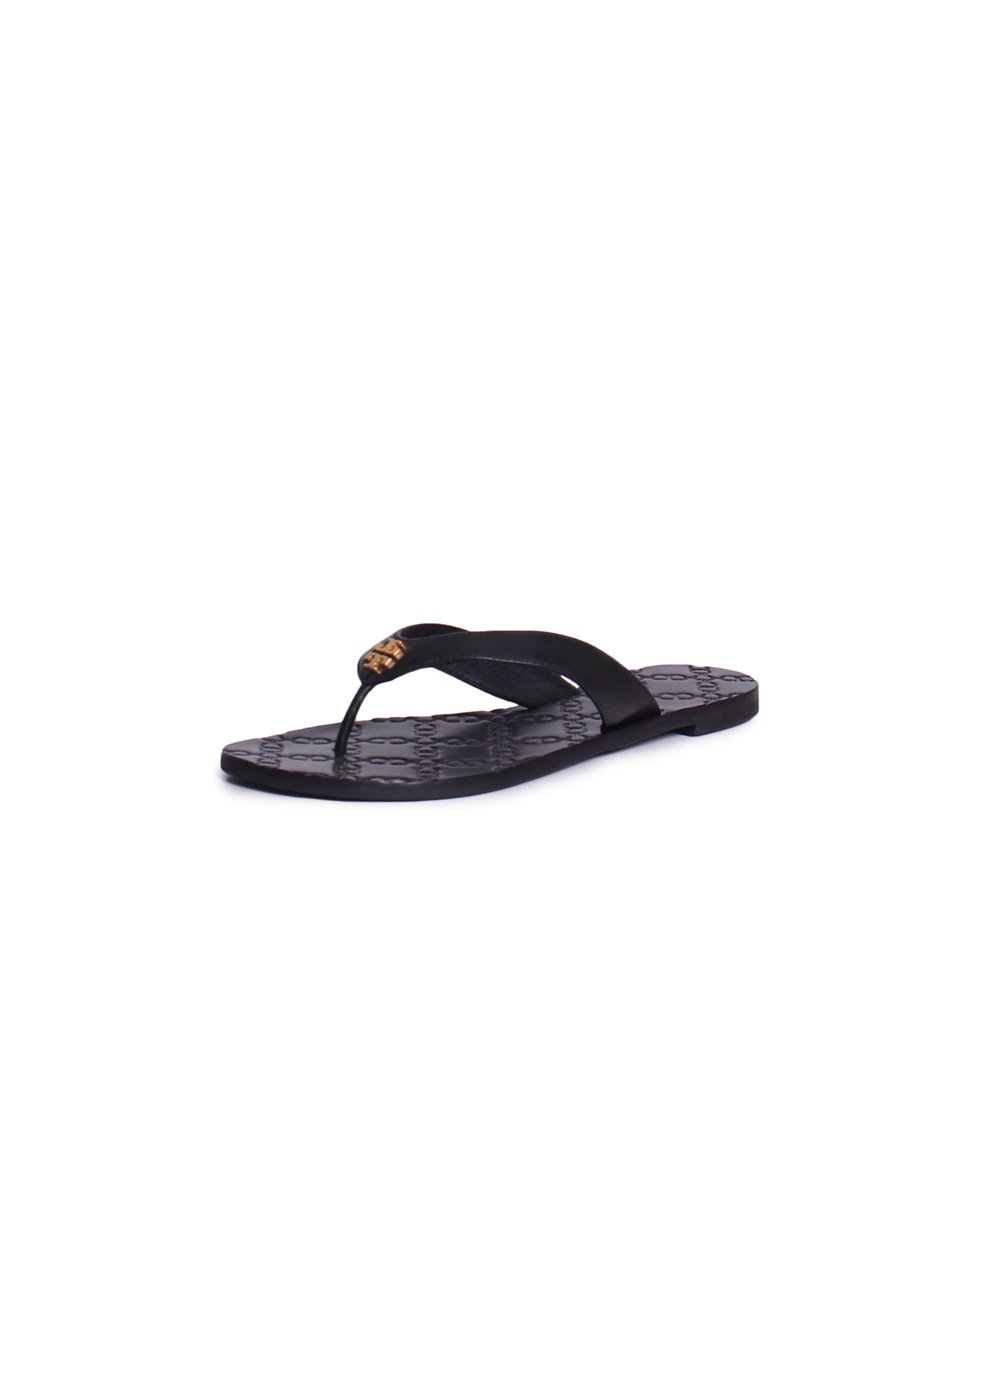 Tory Burch Monroe Leather Thong Sandals (6.5, Black)